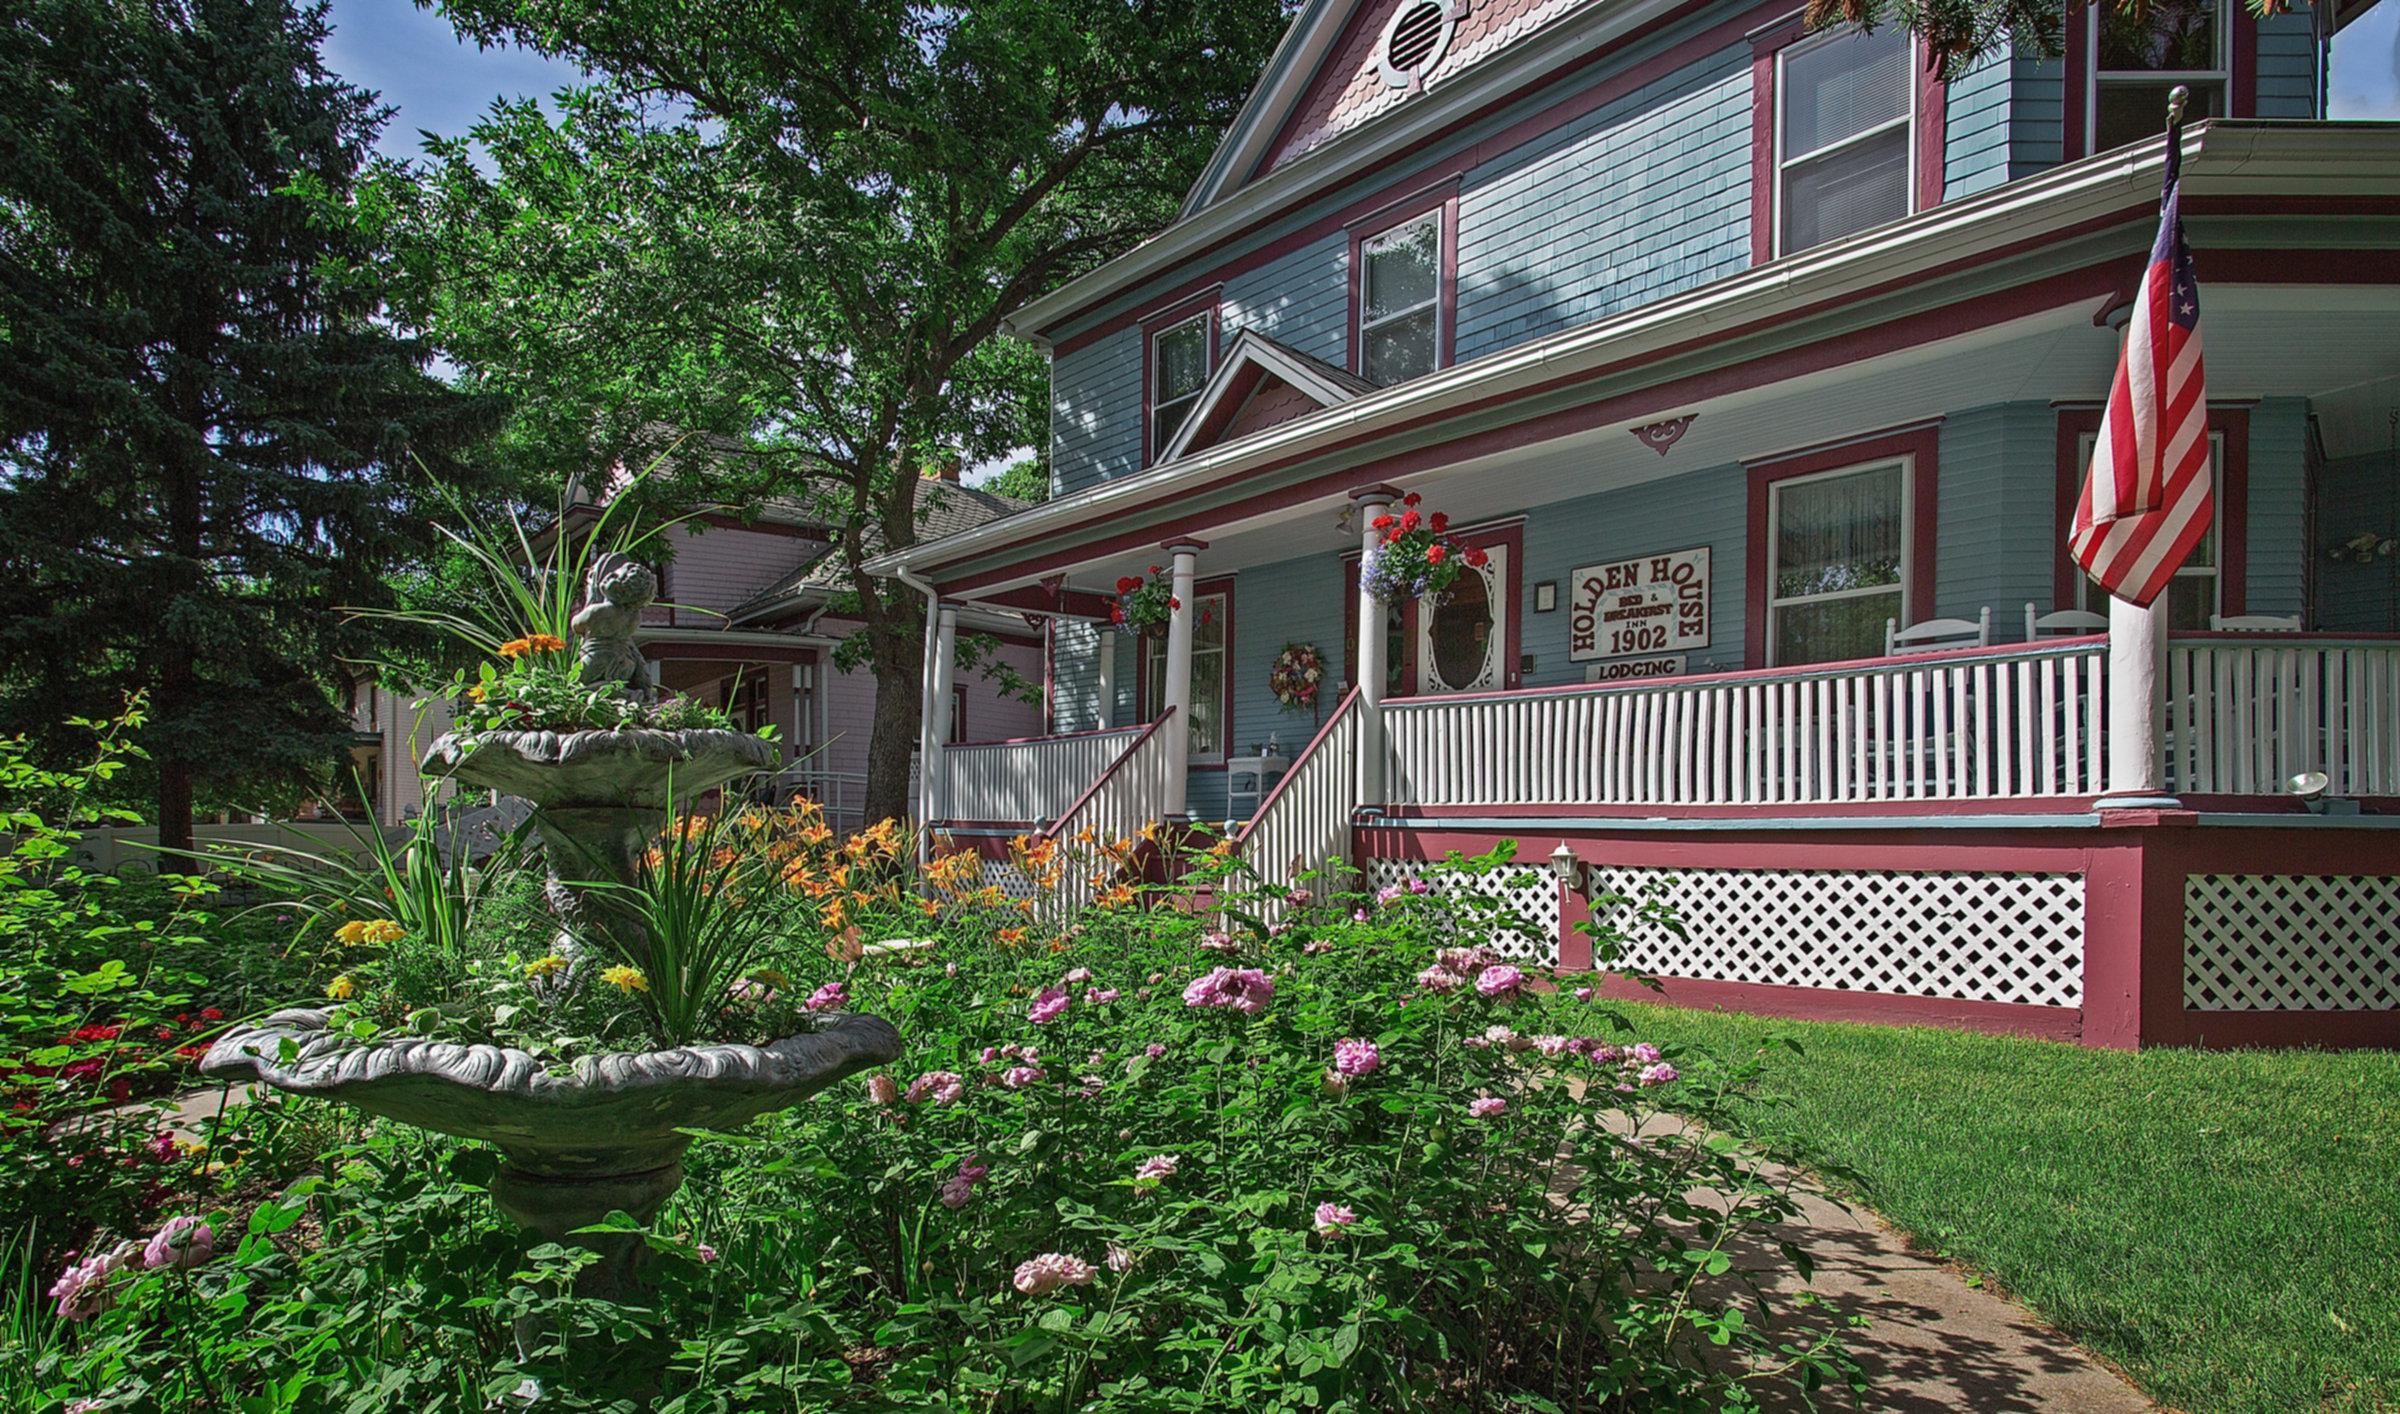 A colorful flower garden in front of a building at Holden House 1902 Bed & Breakfast Inn.